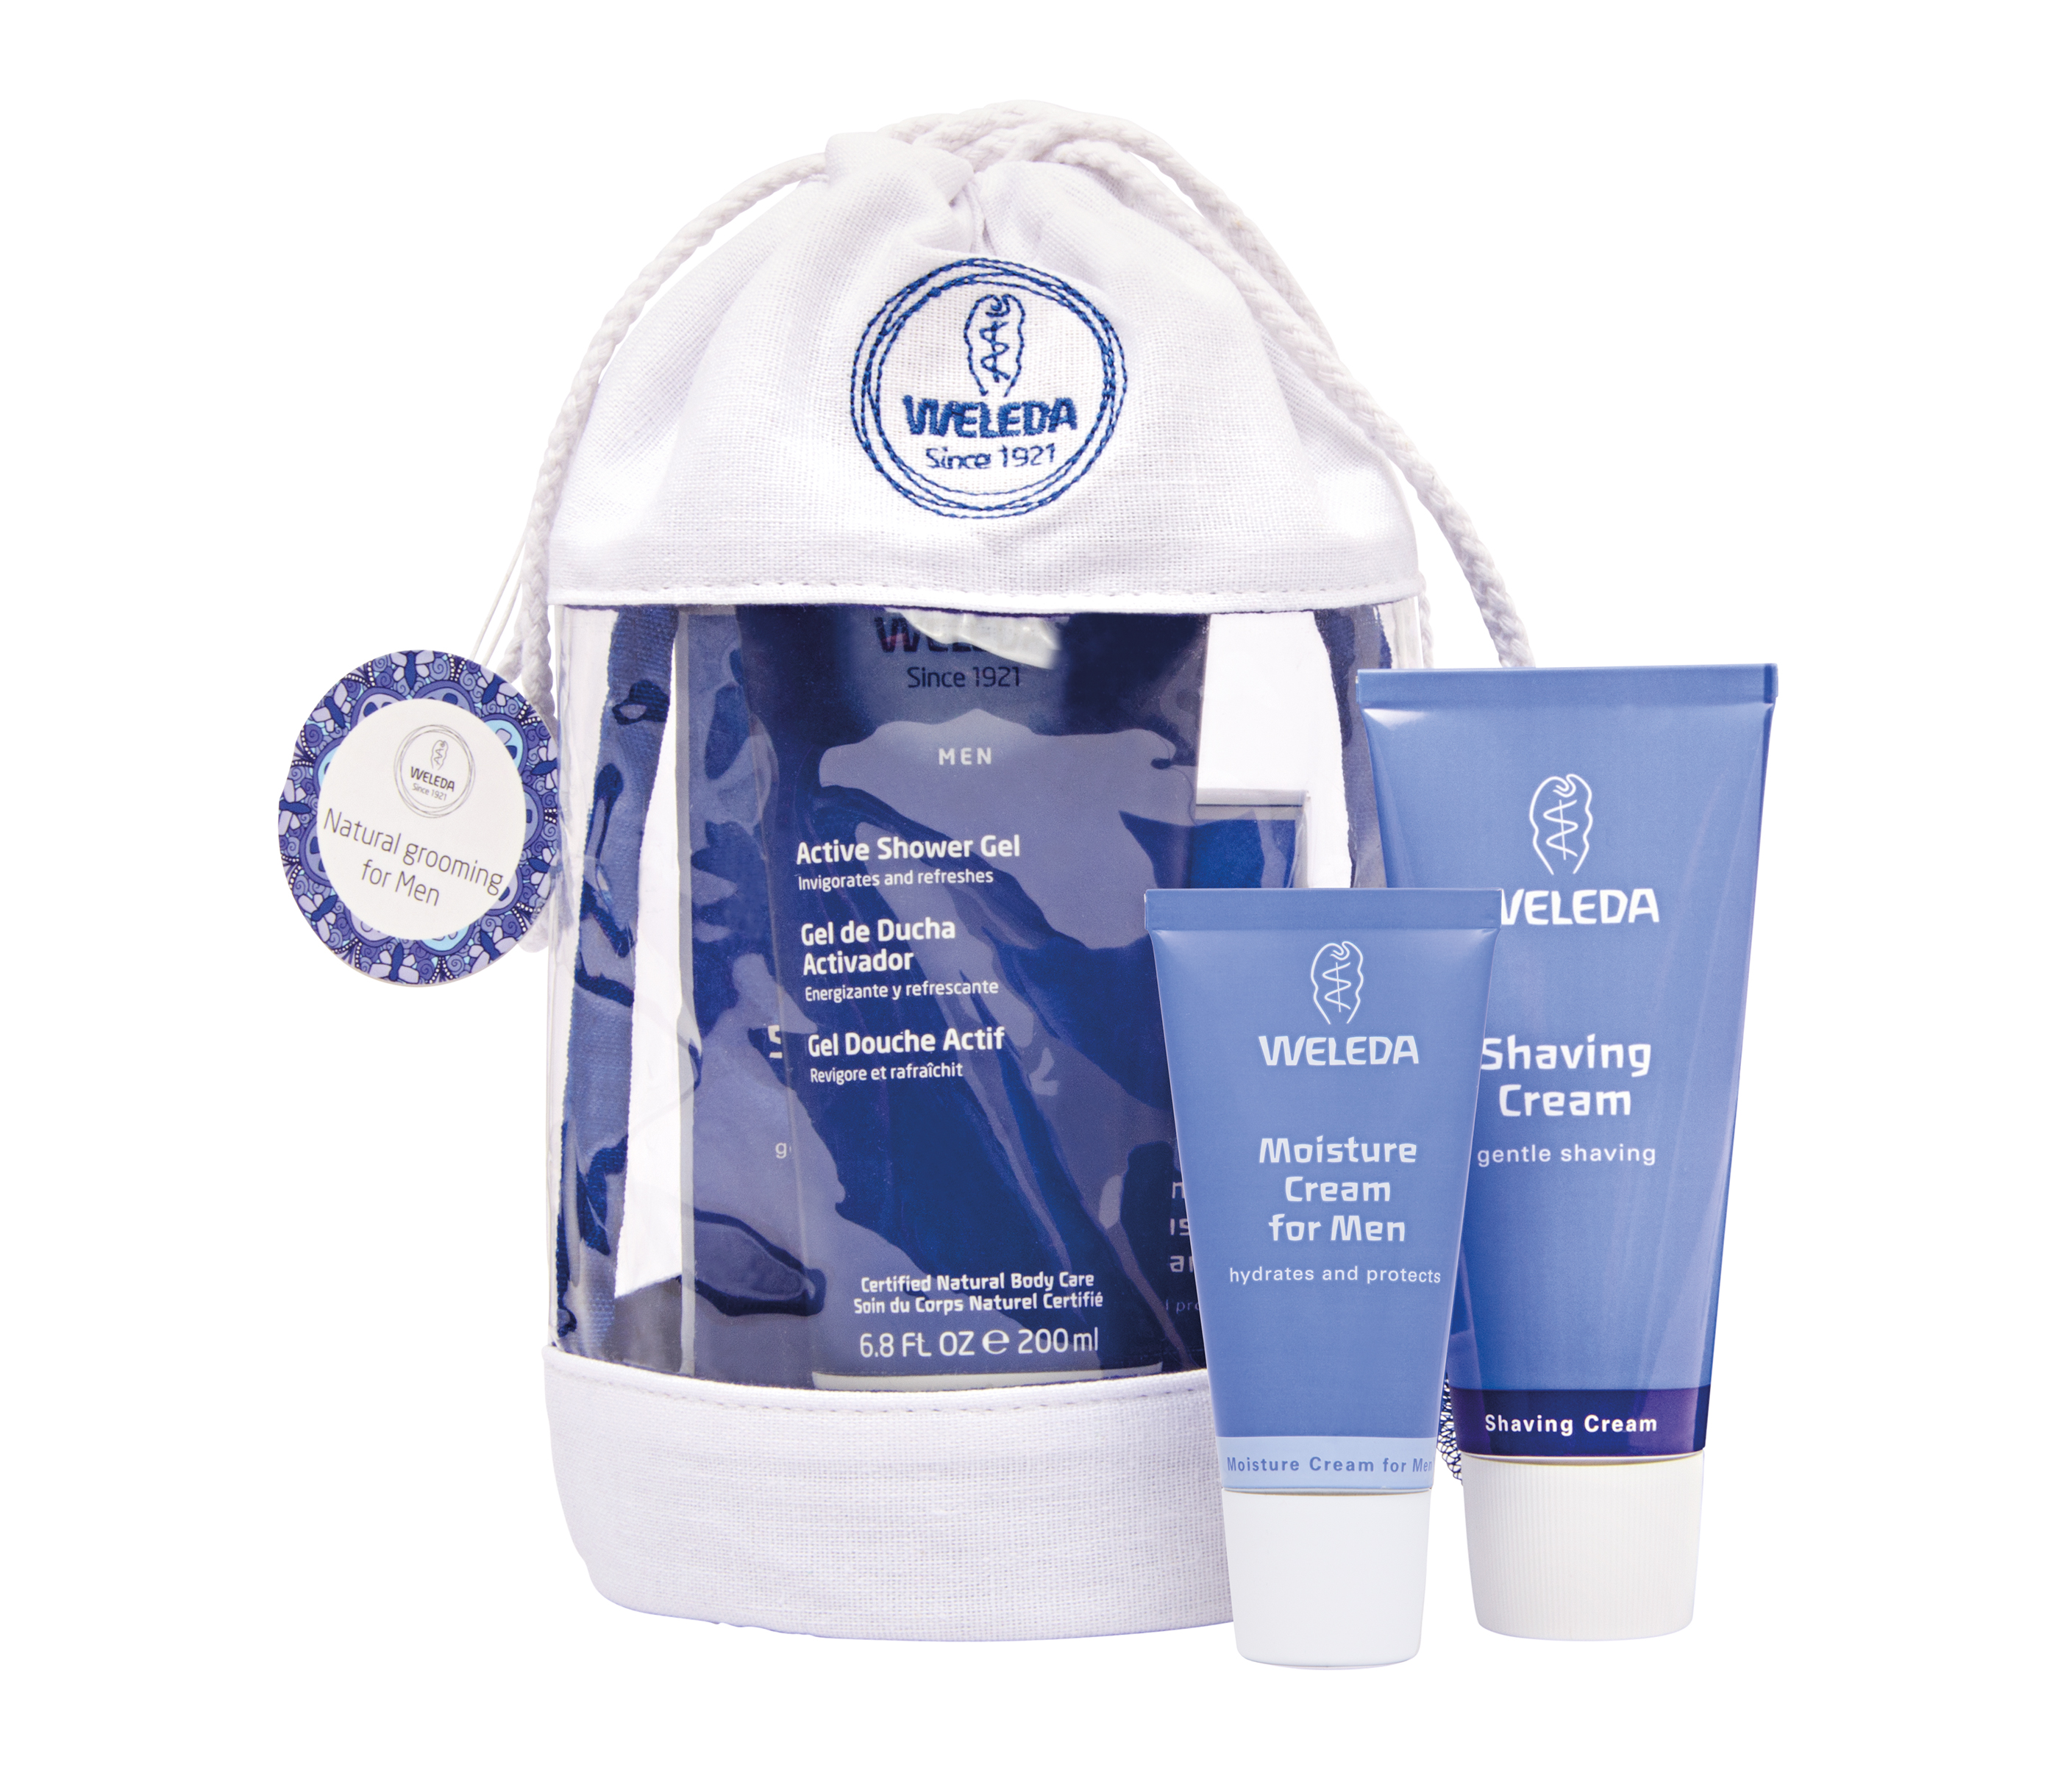 Weleda mens gift set